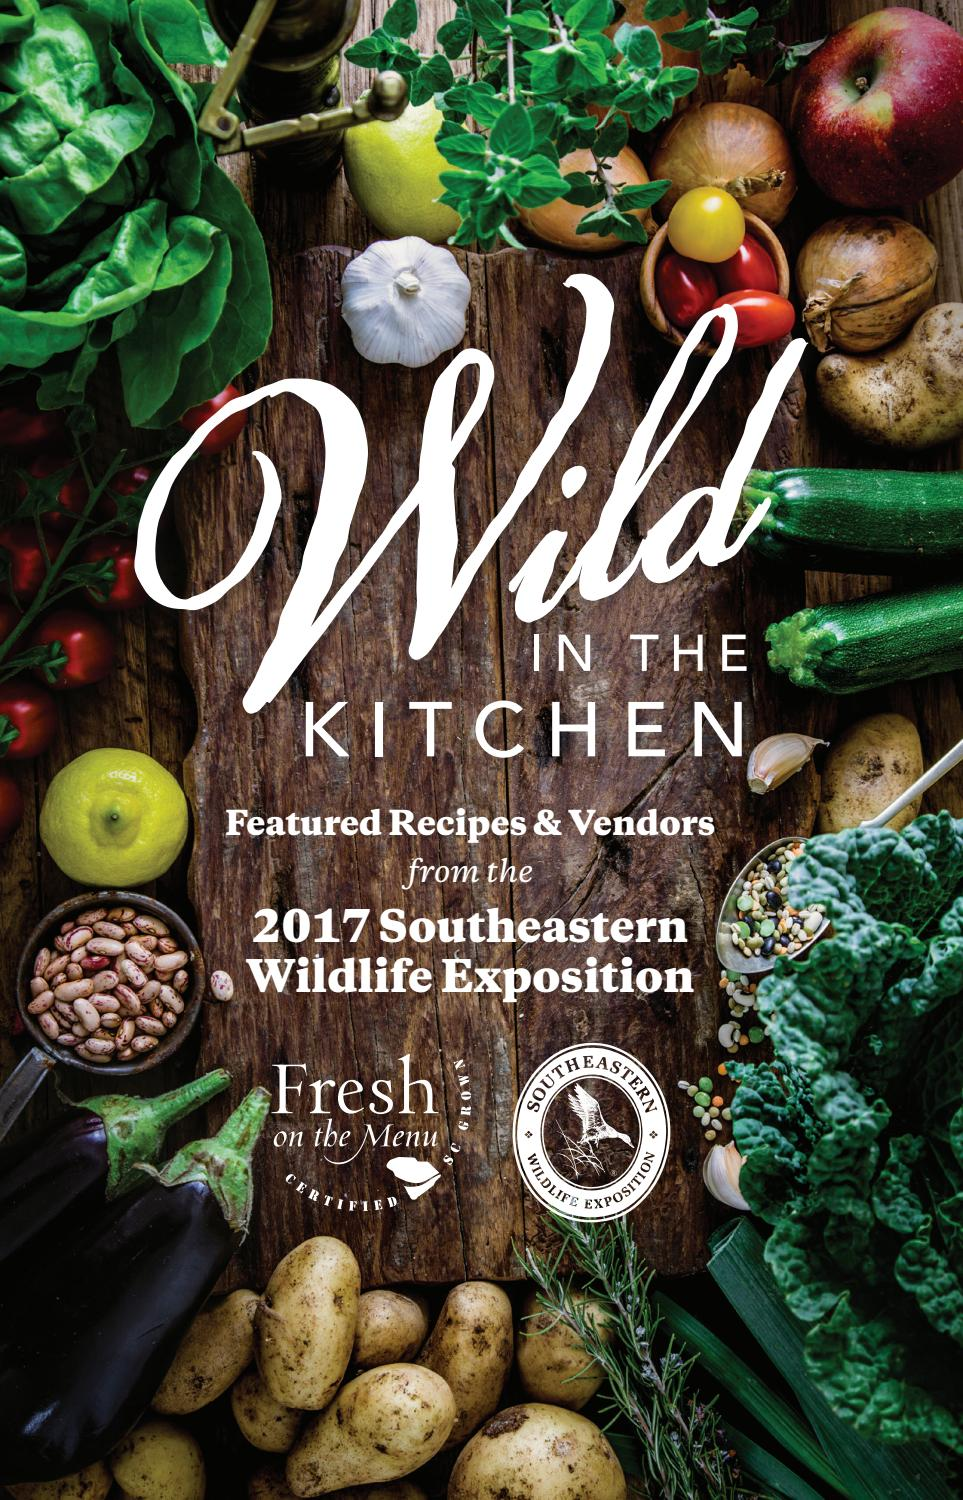 Wild in the Kitchen Cookbook by South Carolina Specialty